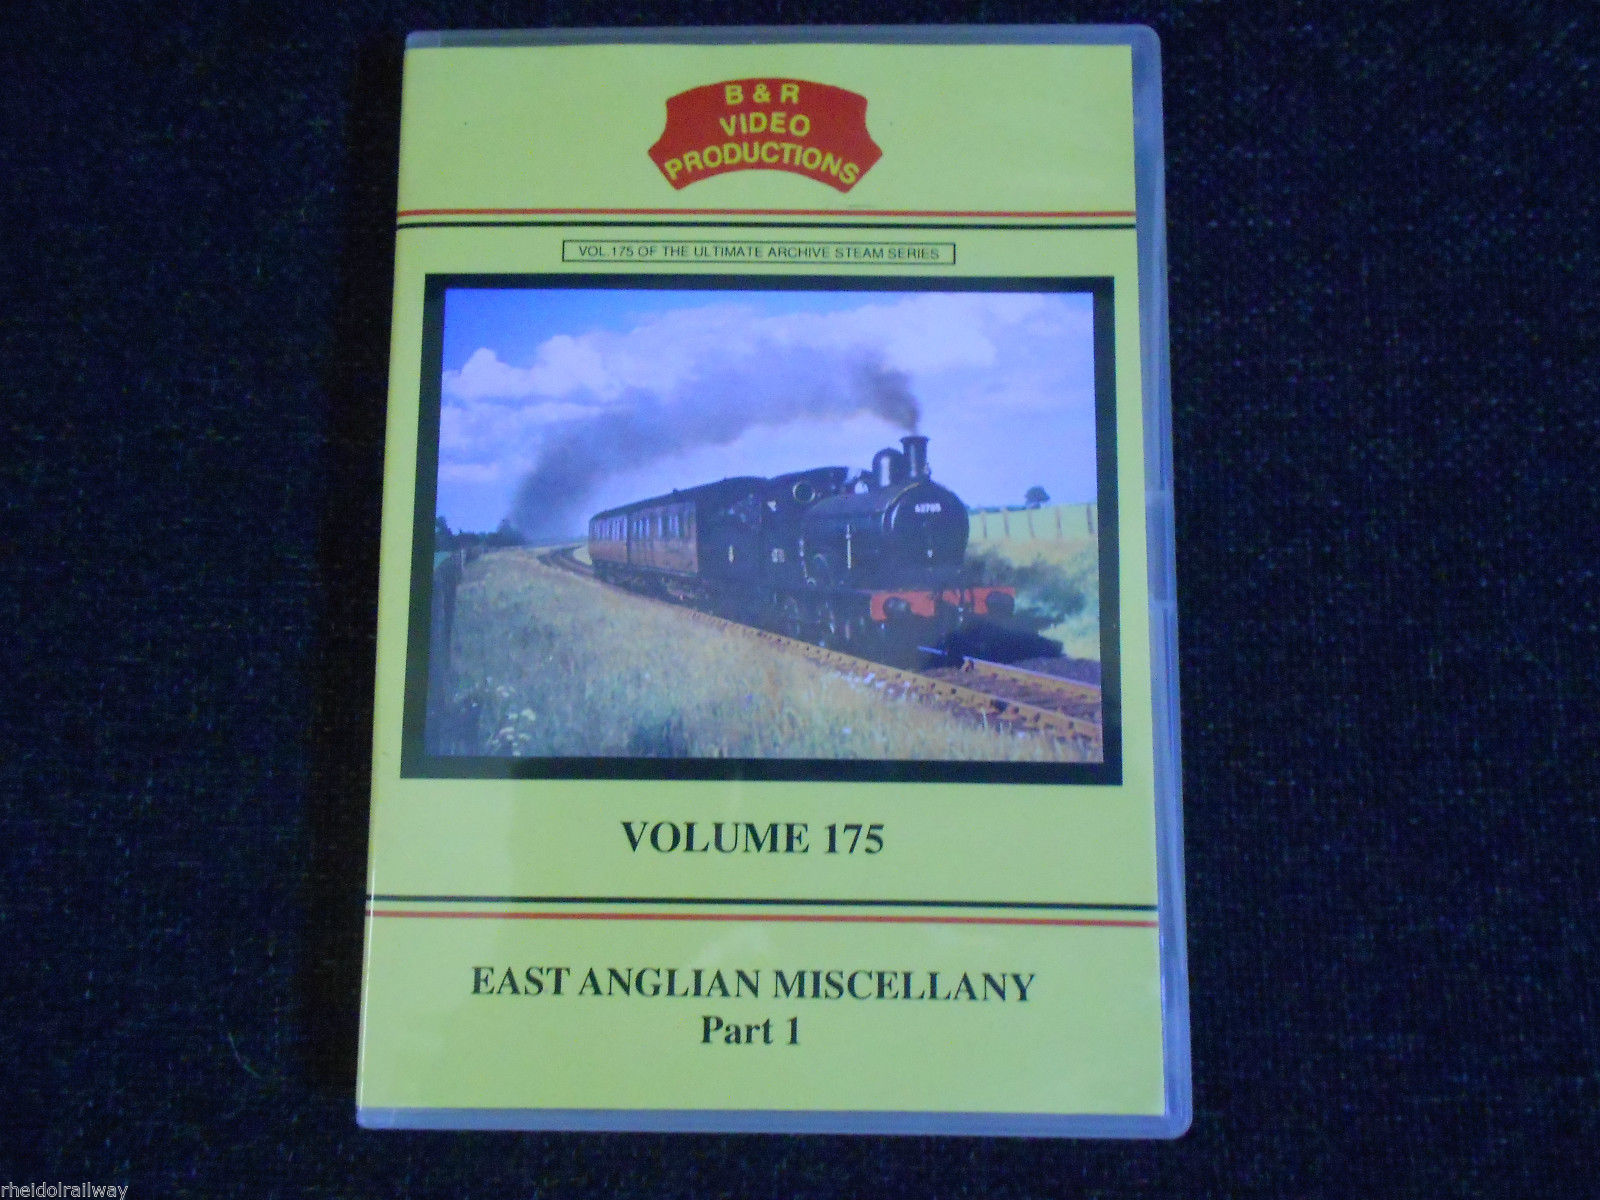 Liverpool St., Norfolk, East Anglian Miscellany, B & R Volume 175 DVD